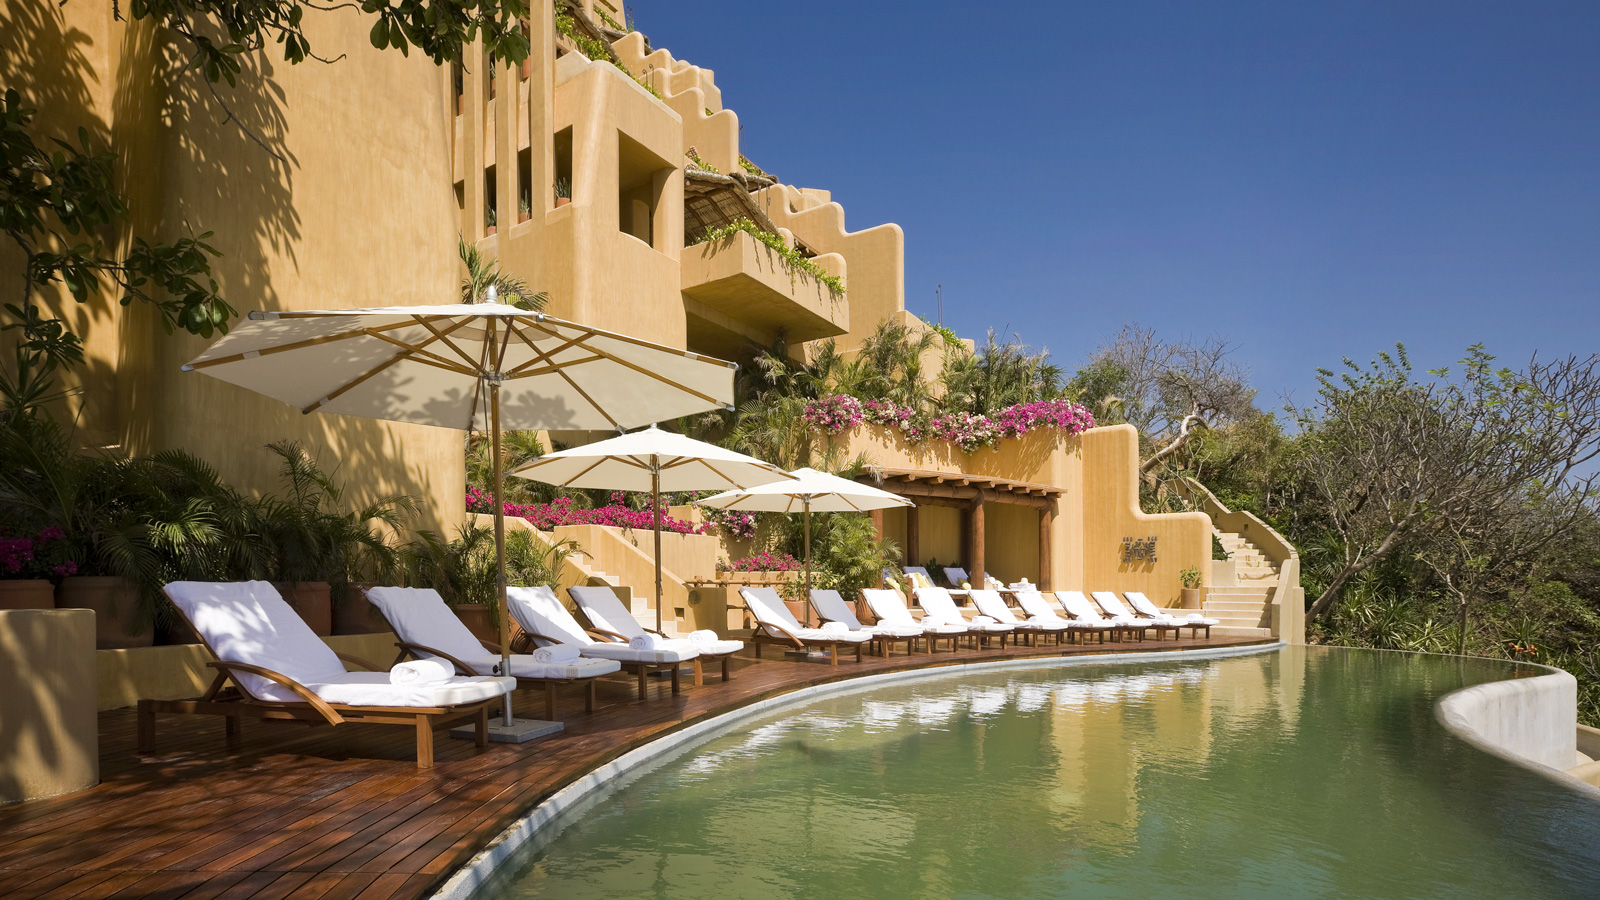 Luxury Vacations In Mexico 7 Destinations And Where To Stay Cnn - Camino Resort